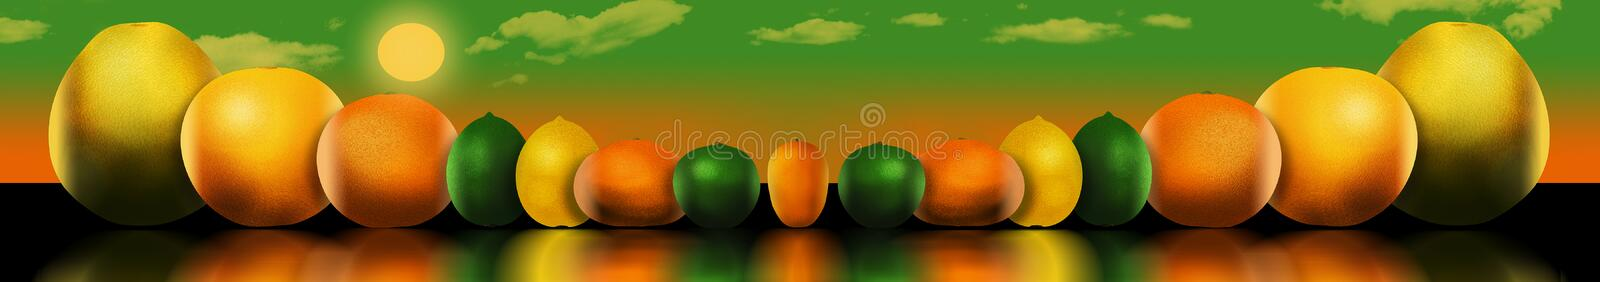 Eight popular citrus fruits are pictured. These include: pomelo. Grapefruit, orange, lime, lemon, tangerine, key lime and kumquat. This is an illustration stock illustration